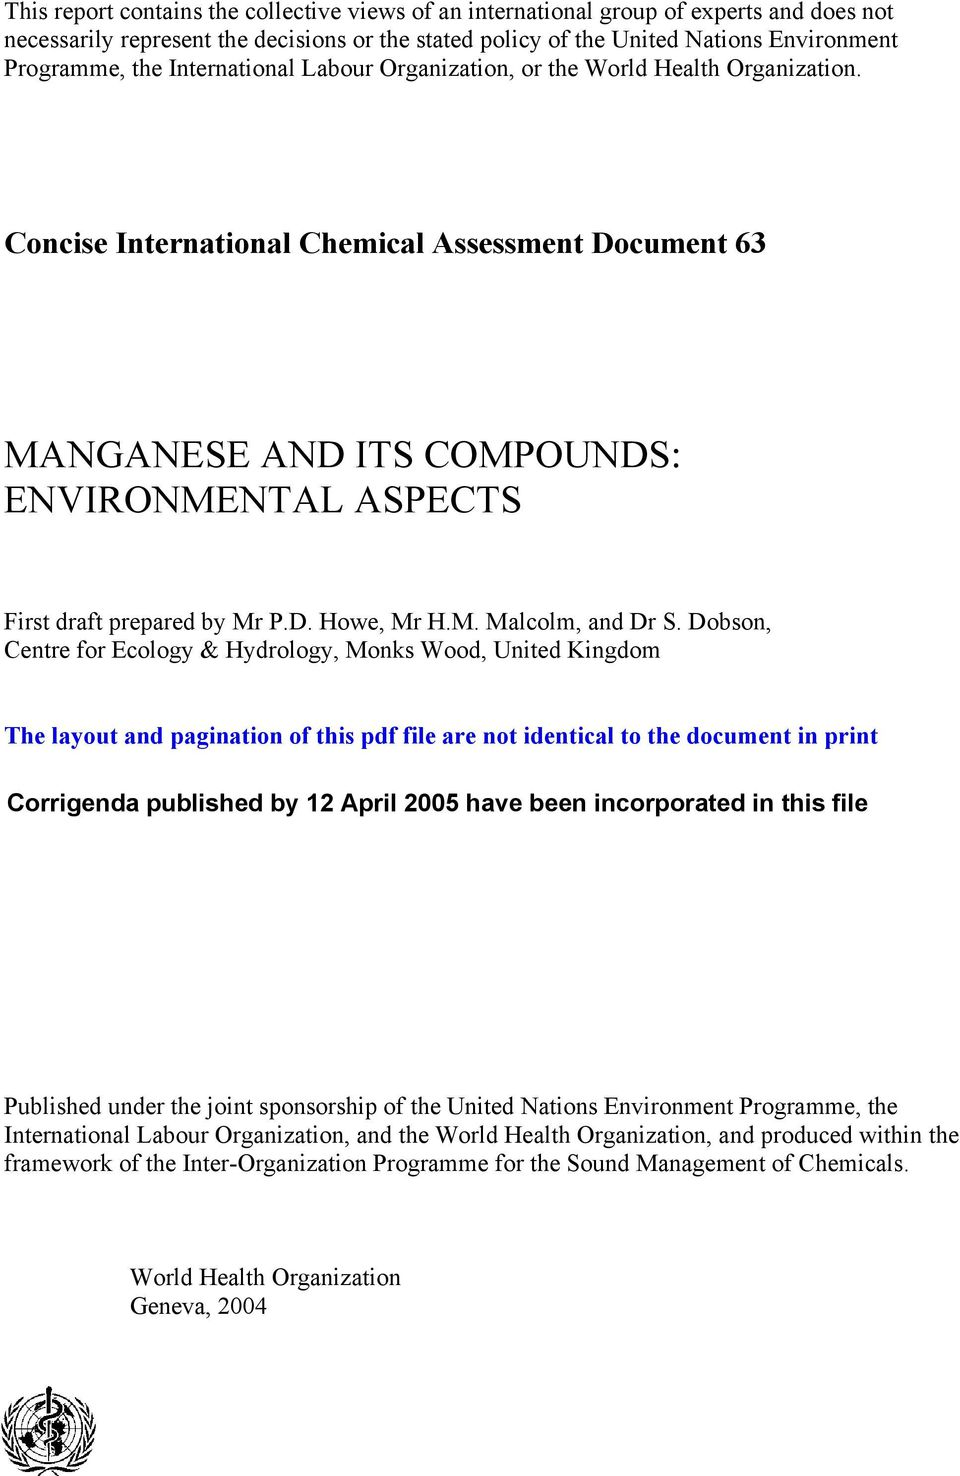 Concise International Chemical Assessment Document 63 MANGANESE AND ITS COMPOUNDS: ENVIRONMENTAL ASPECTS First draft prepared by Mr P.D. Howe, Mr H.M. Malcolm, and Dr S.